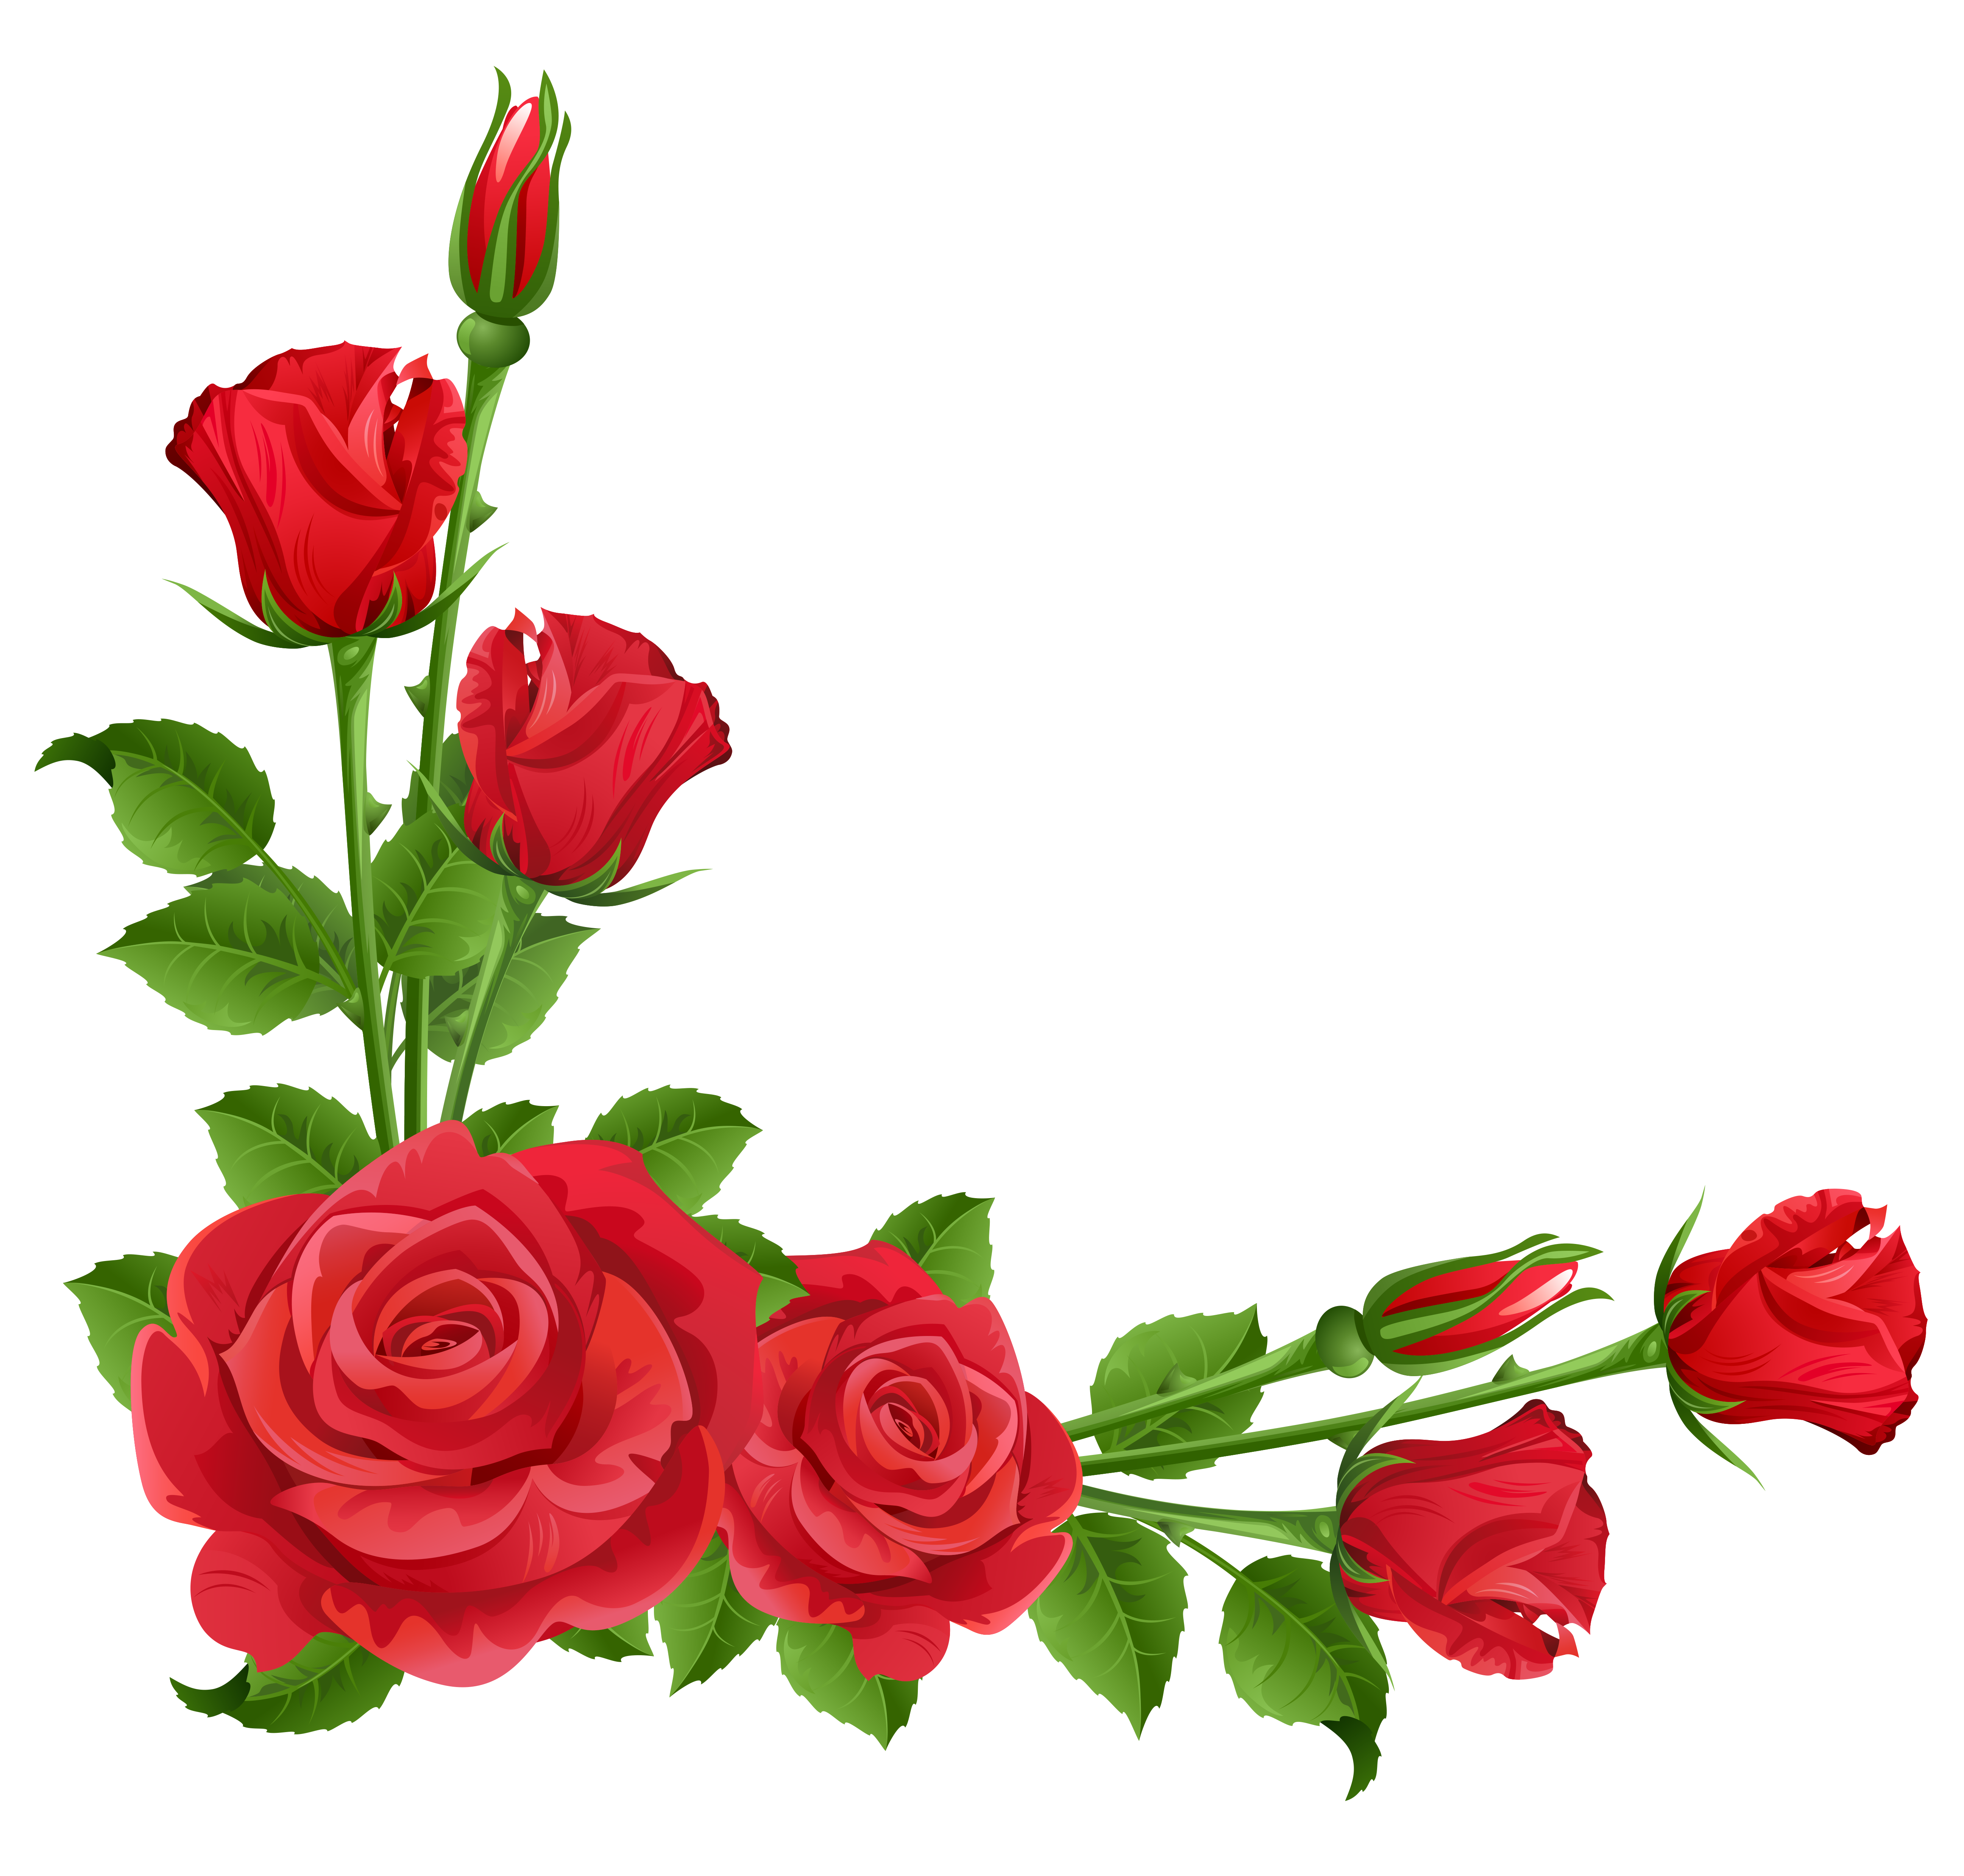 Rosas vector. Red roses transparent png